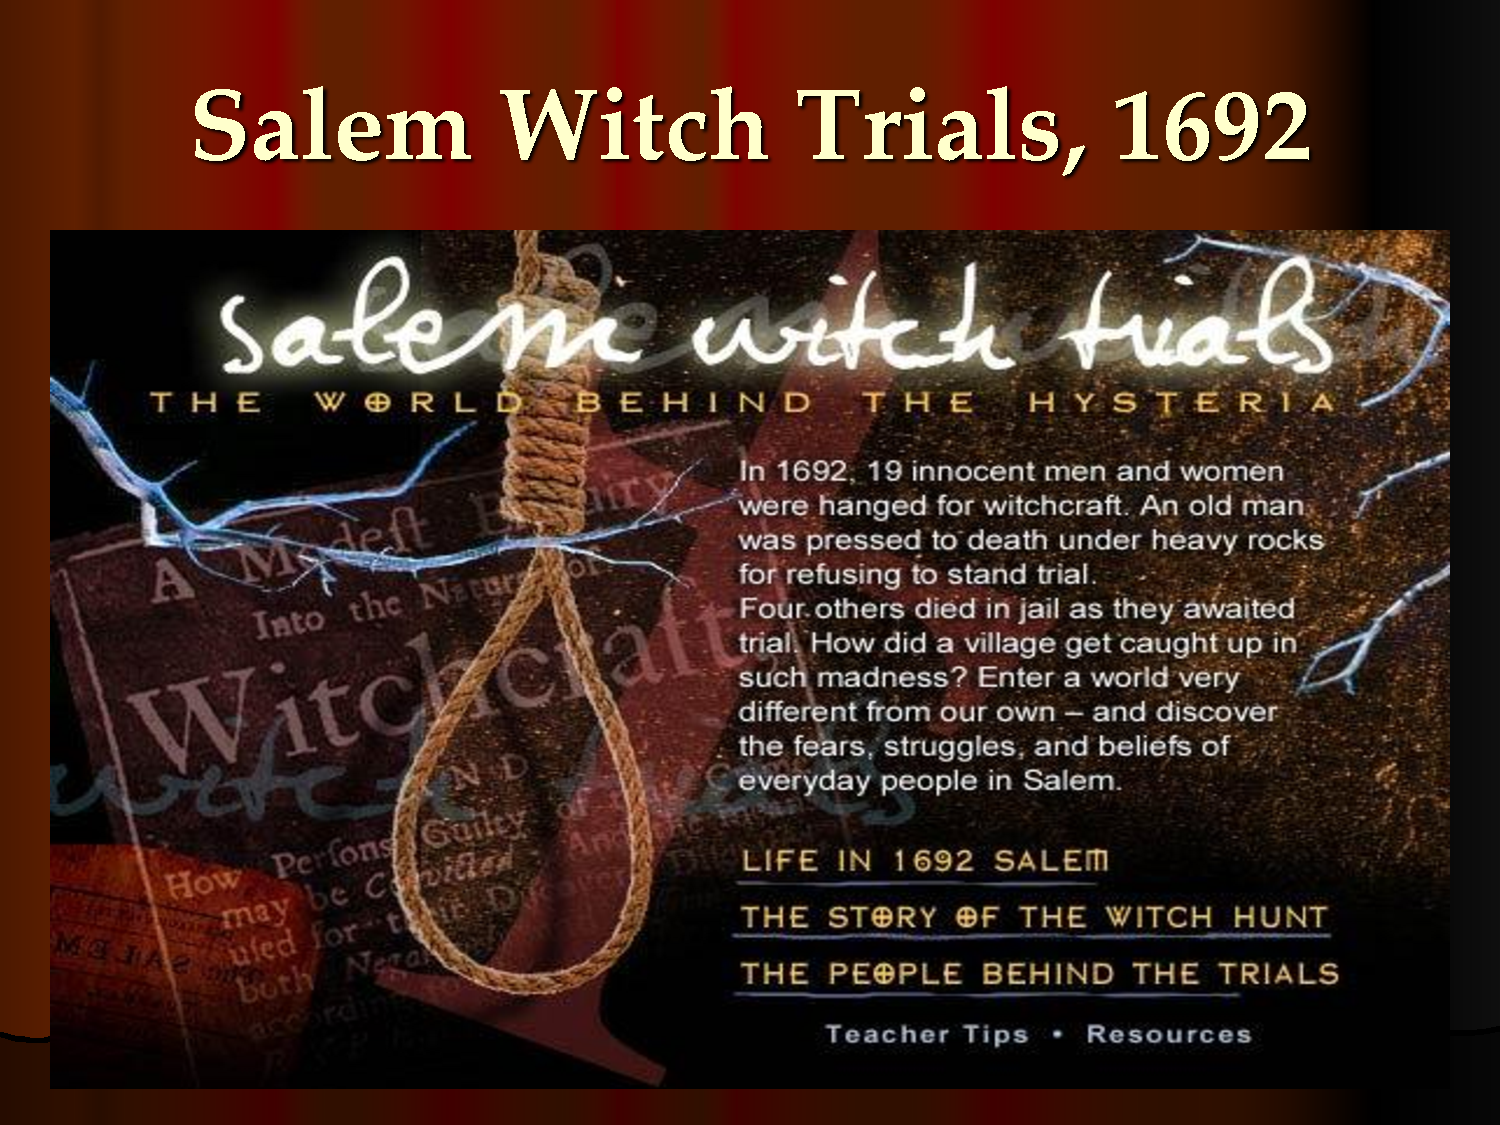 account of the salem witch trials of 1692 The pulitzer prize-winning author of cleopatra: a life, the #1 national bestseller, unpacks the mystery of the salem witch trials in her fourth book, the witches: salem, 1692, available now from little, brown & co.